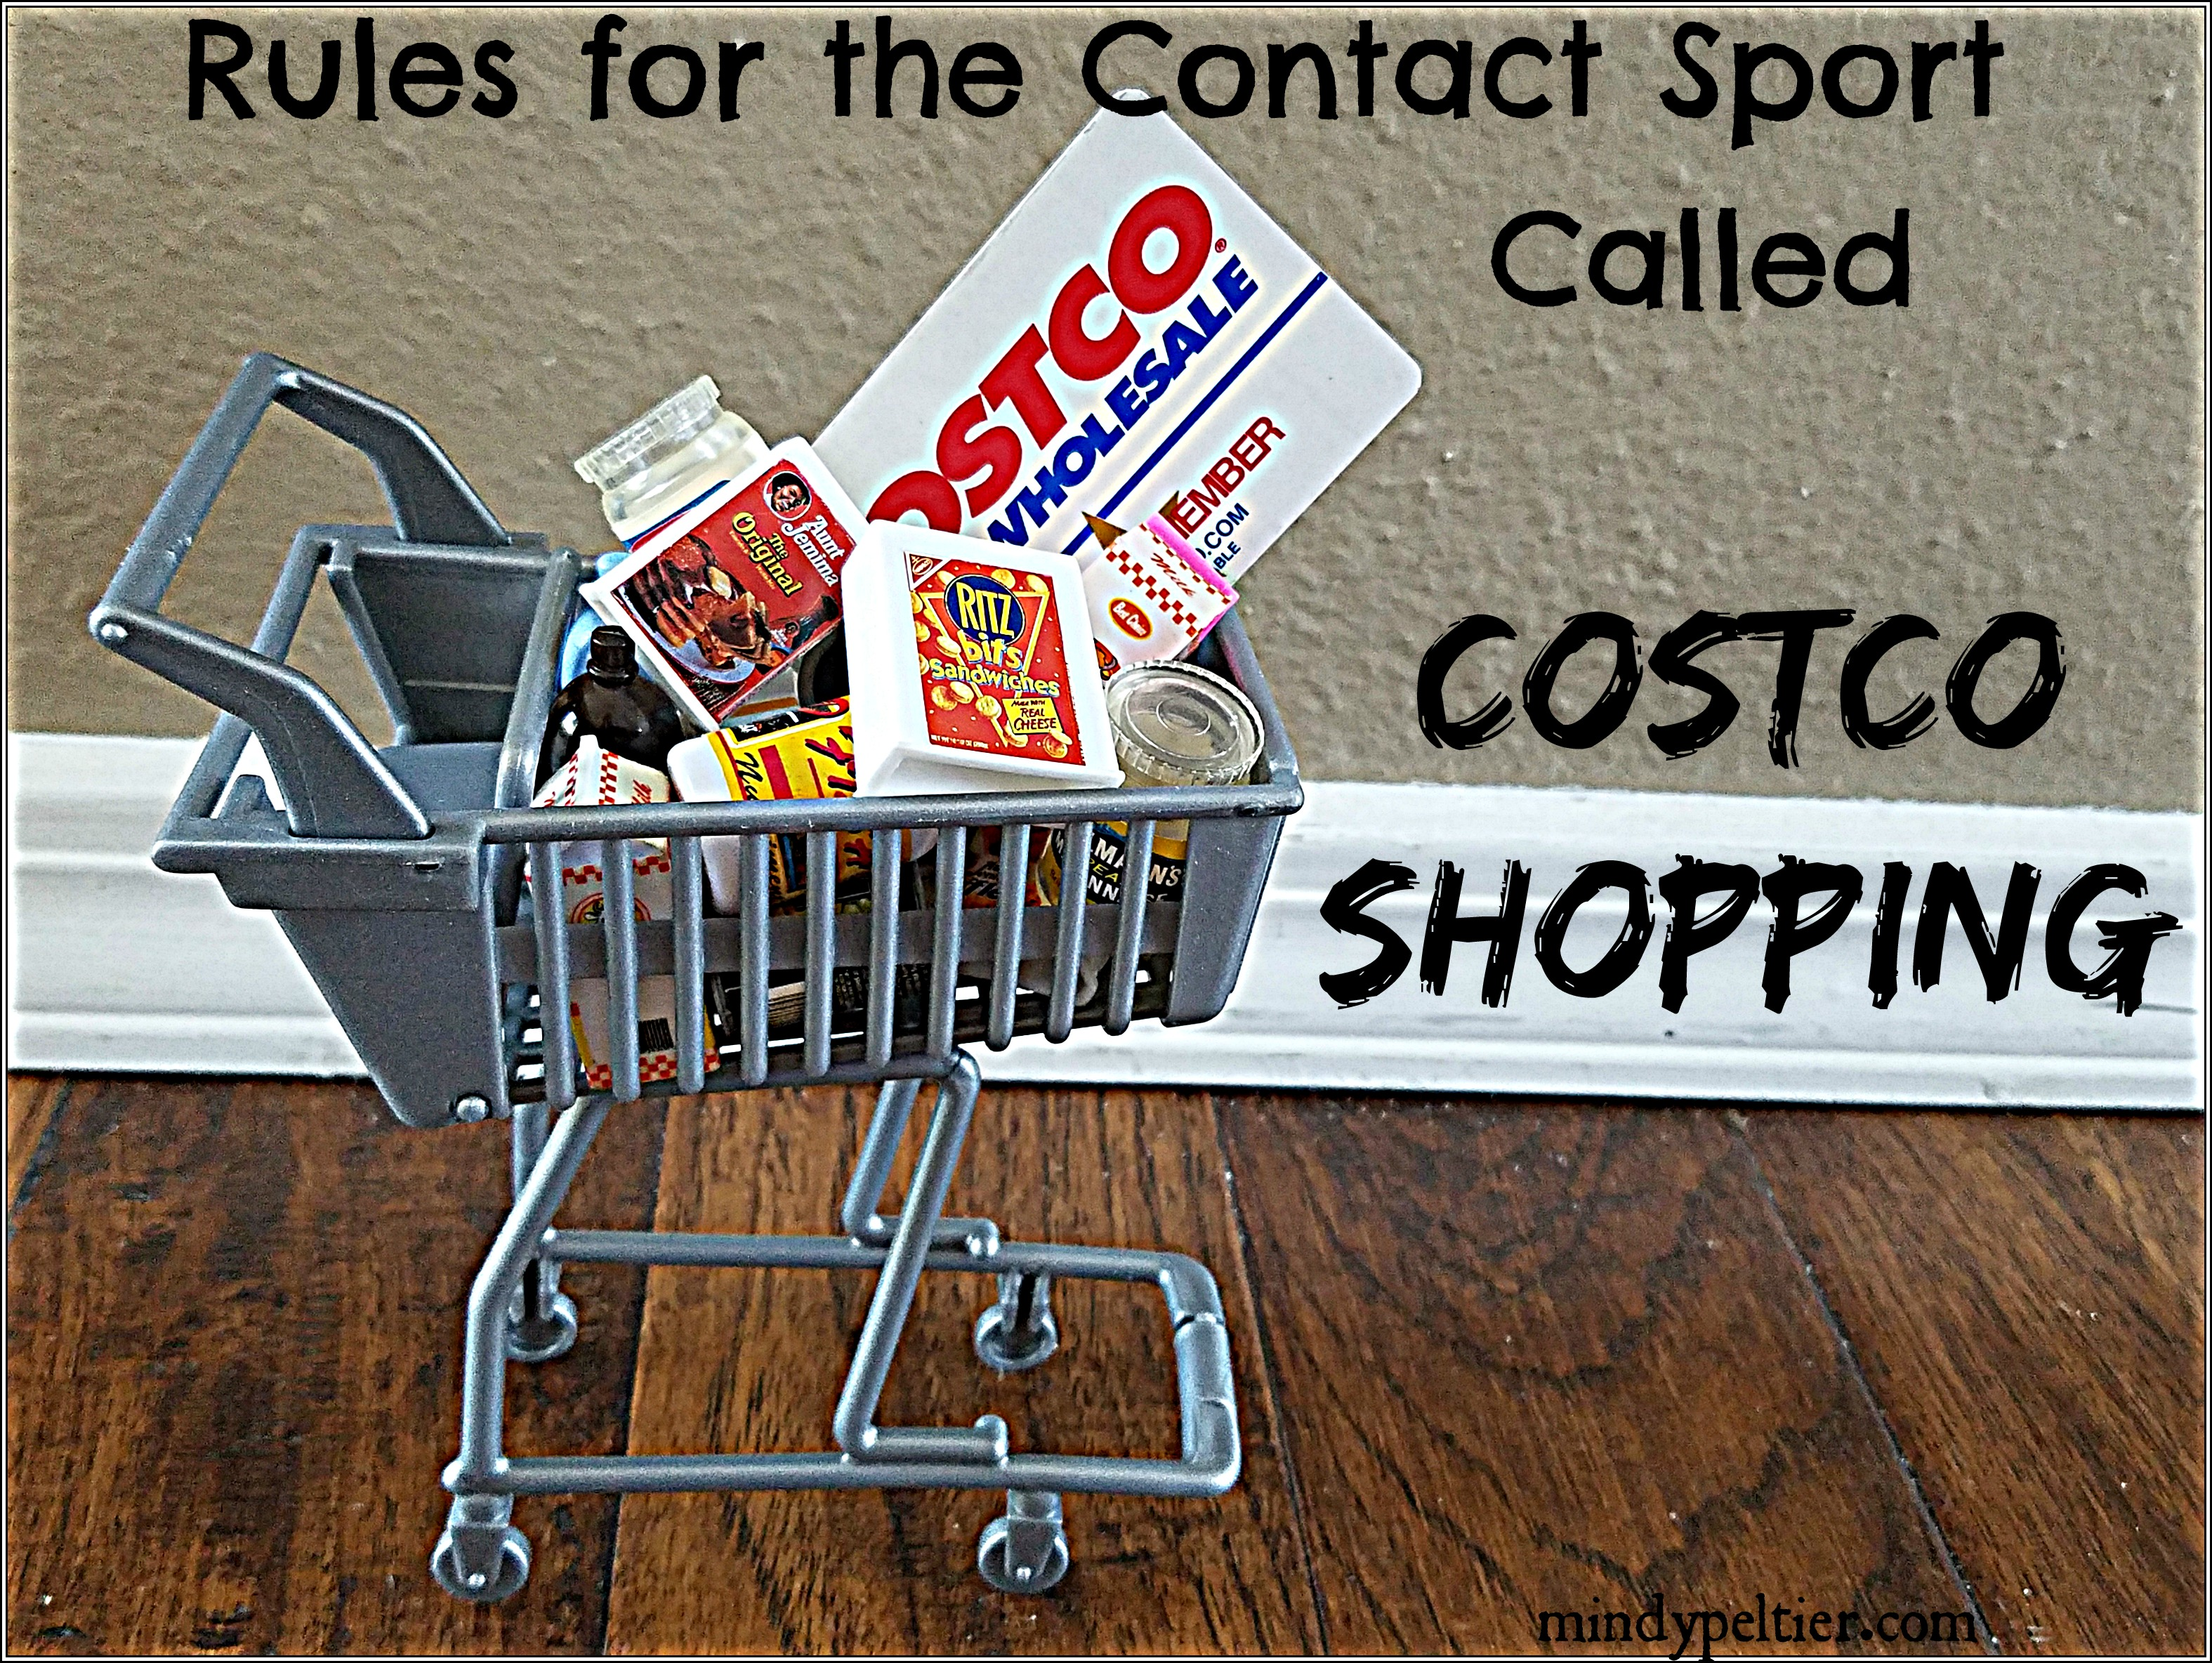 Rules for Shopping at Costco: